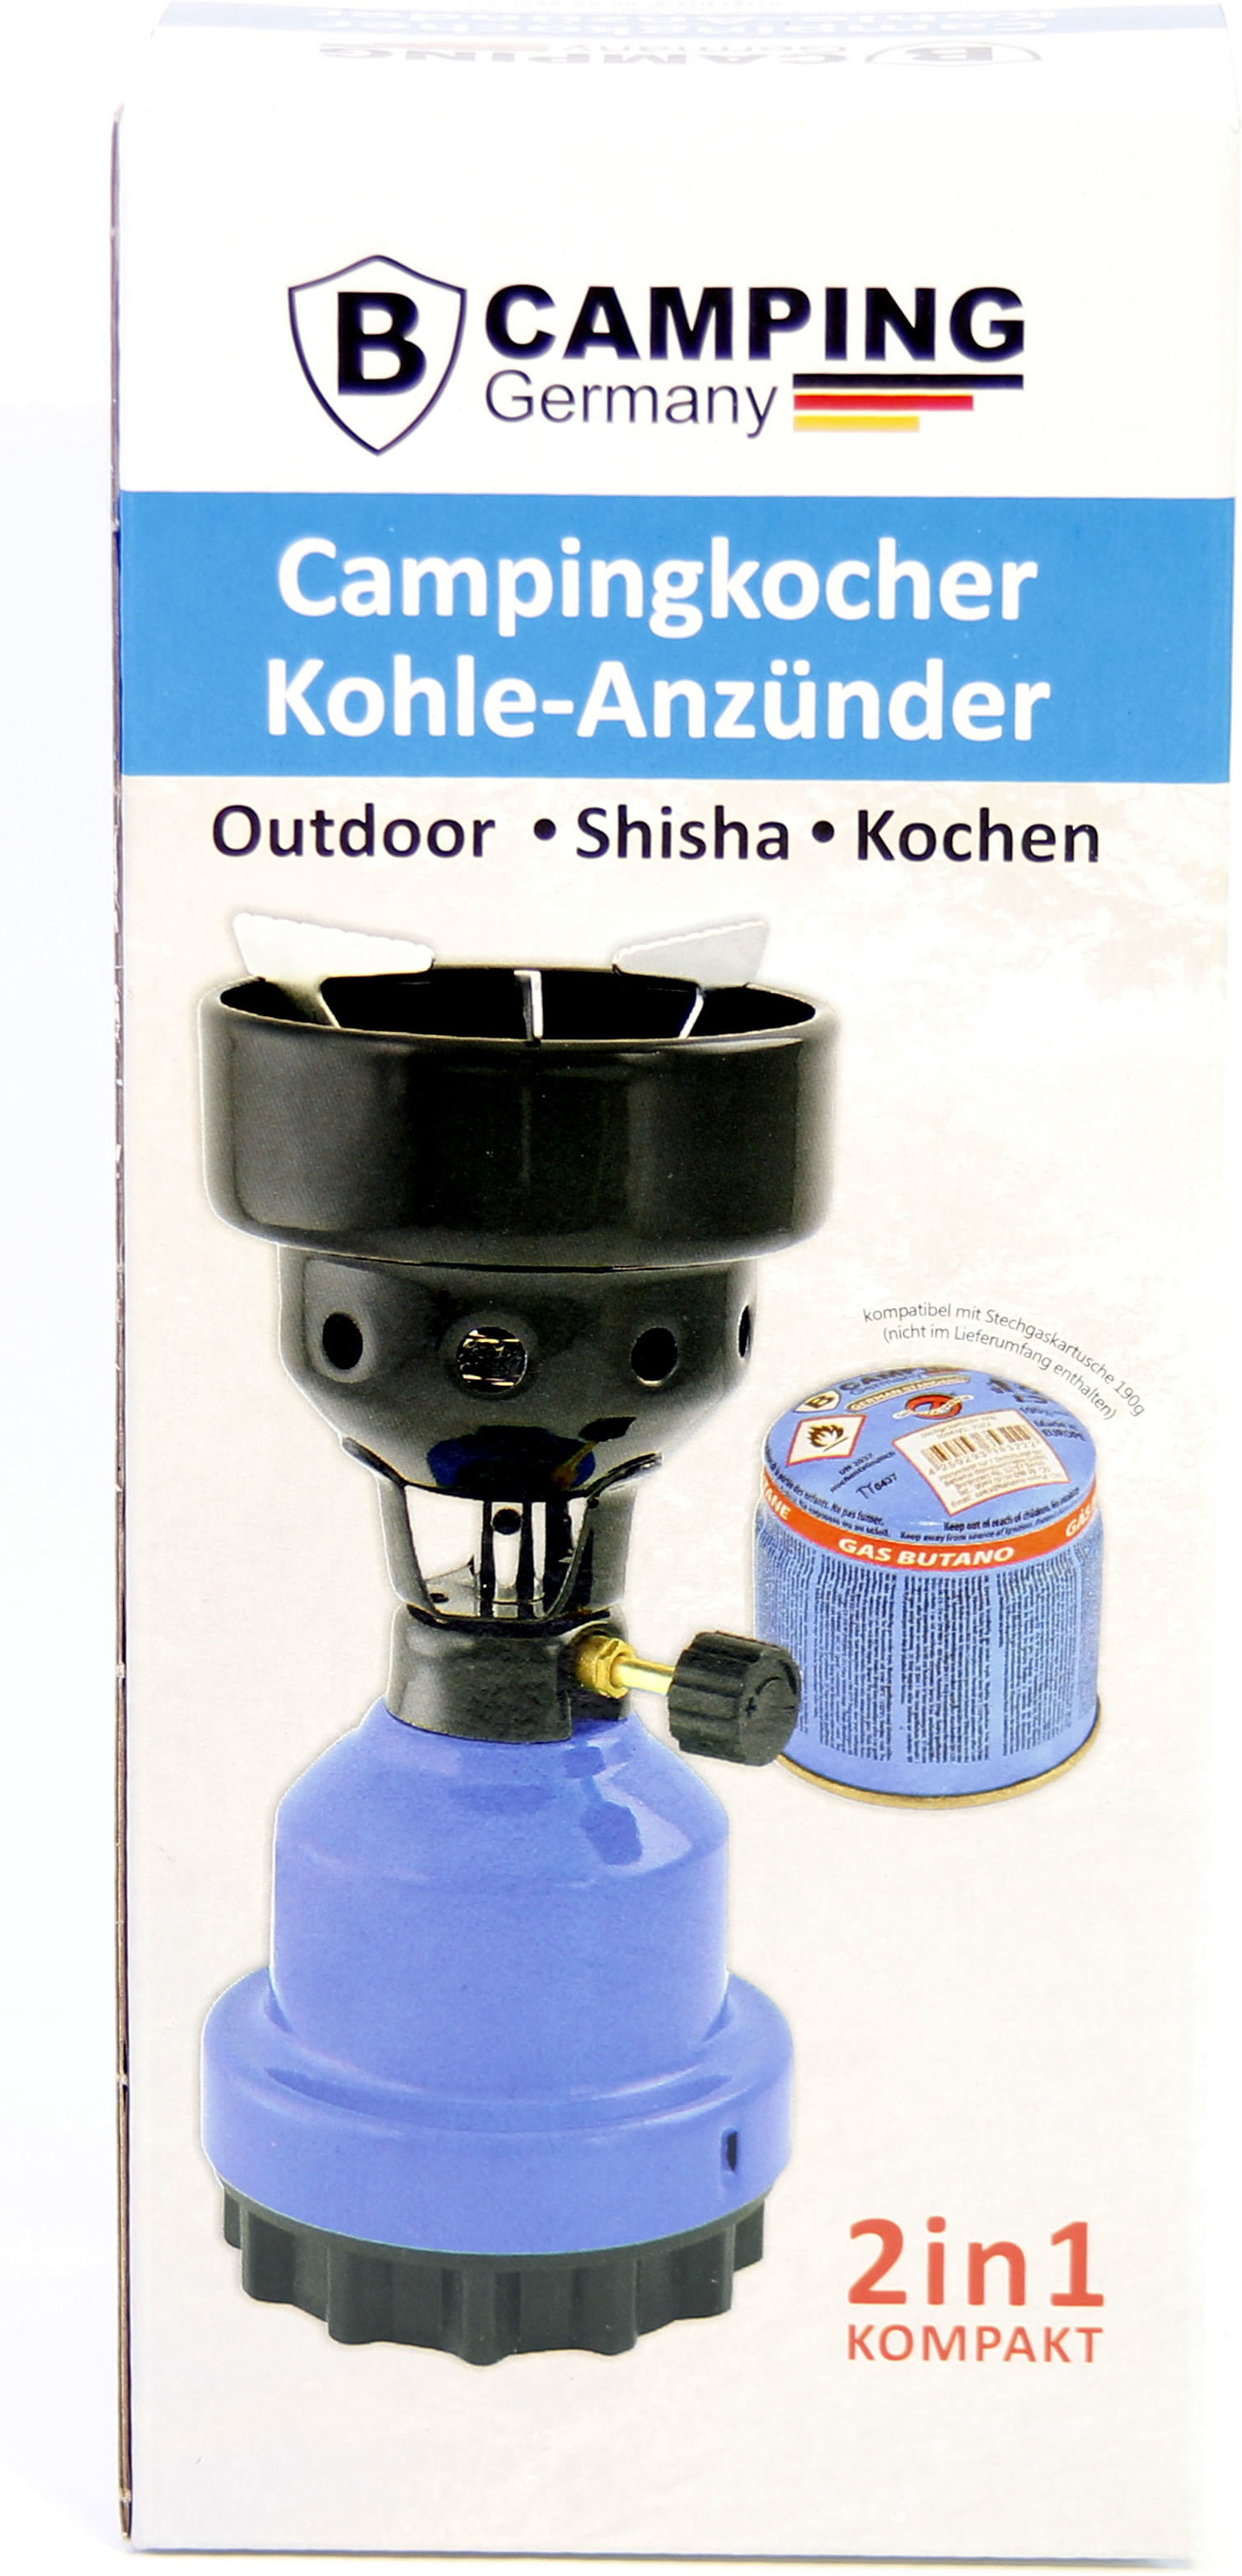 Campingkocher & Kohle Anzünder 2in1 Metall Gaskocher Shishakocher aus Metall in Blau